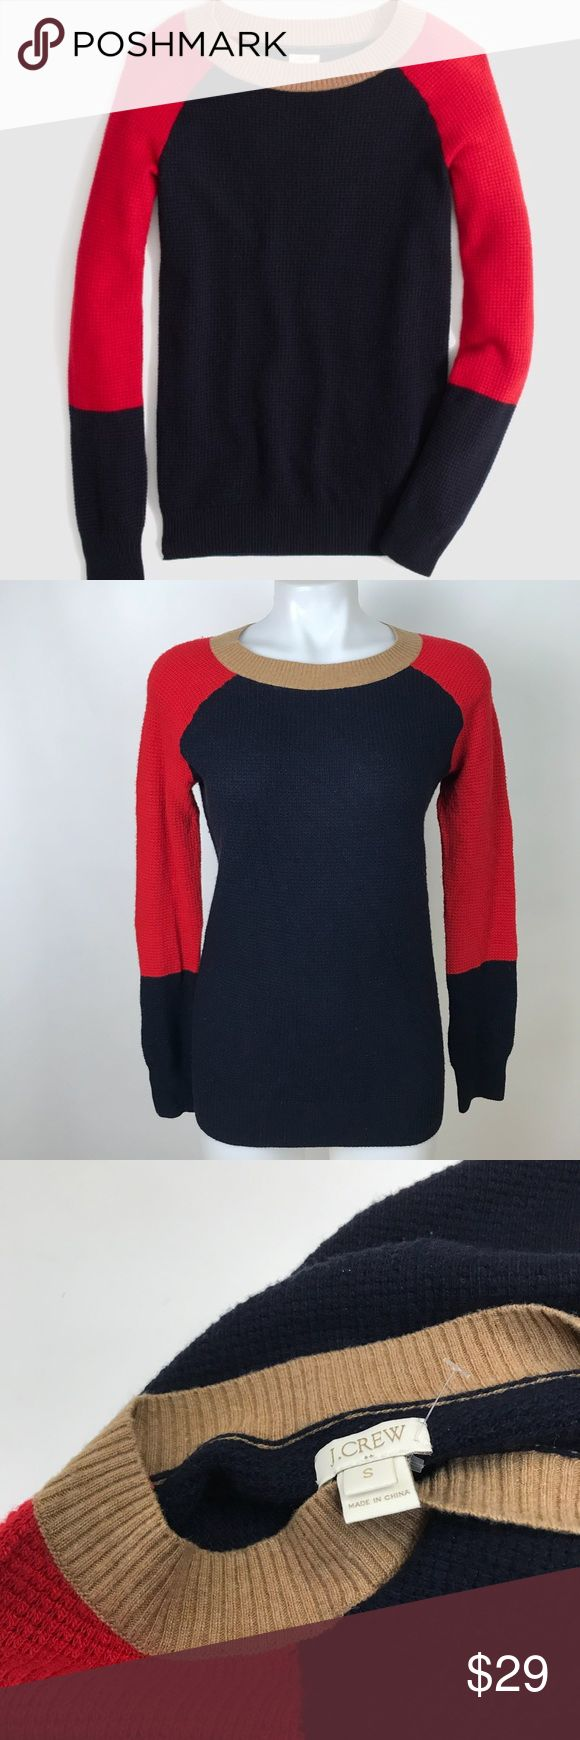 """J. Crew Factory Warmspun Waffle Knit Sweater 18"""" pit to pit 25"""" in length 37% viscose 25% nylon 28% merino wool Preowned condition.  Minor polling to fabric. No models/Trades J. Crew Factory Sweaters Crew & Scoop Necks"""